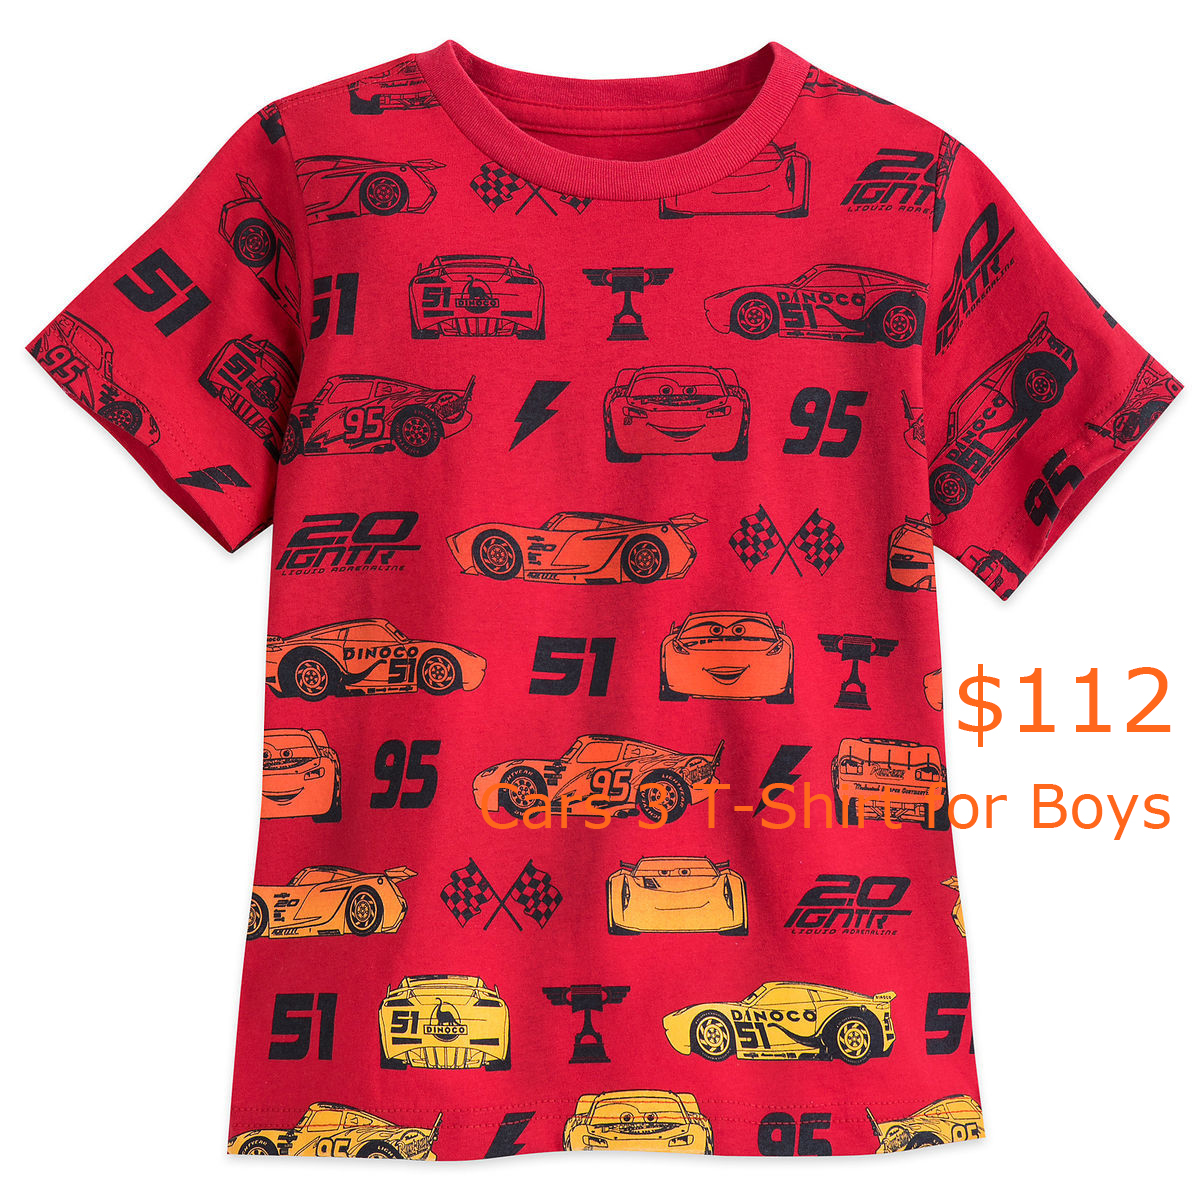 112Cars 3 T-Shirt for Boys